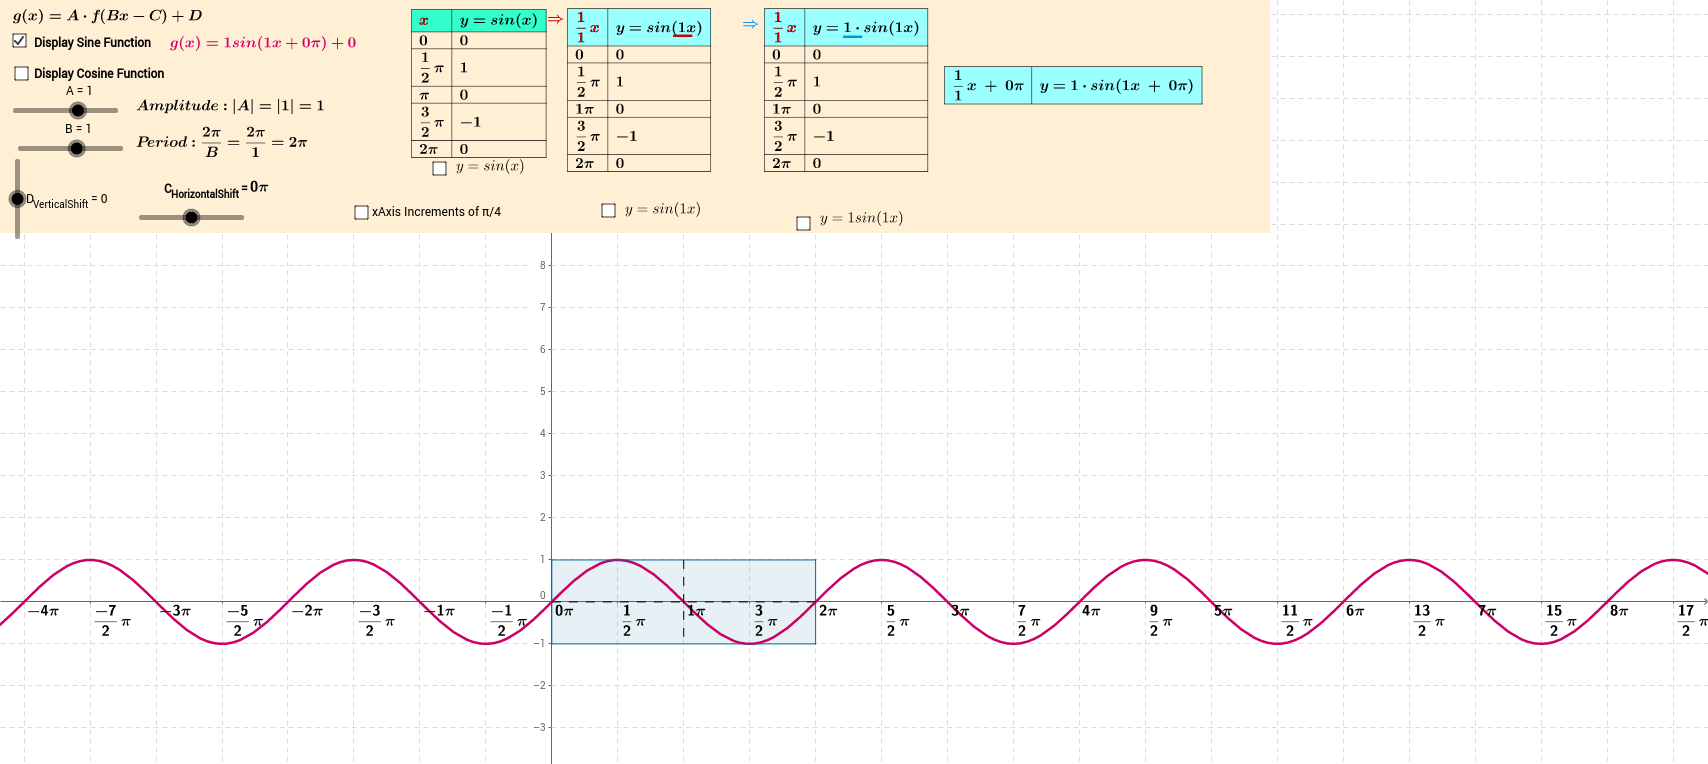 Worksheets Graphing Sine And Cosine Worksheet graphing sine and cosine functions geogebra view worksheet